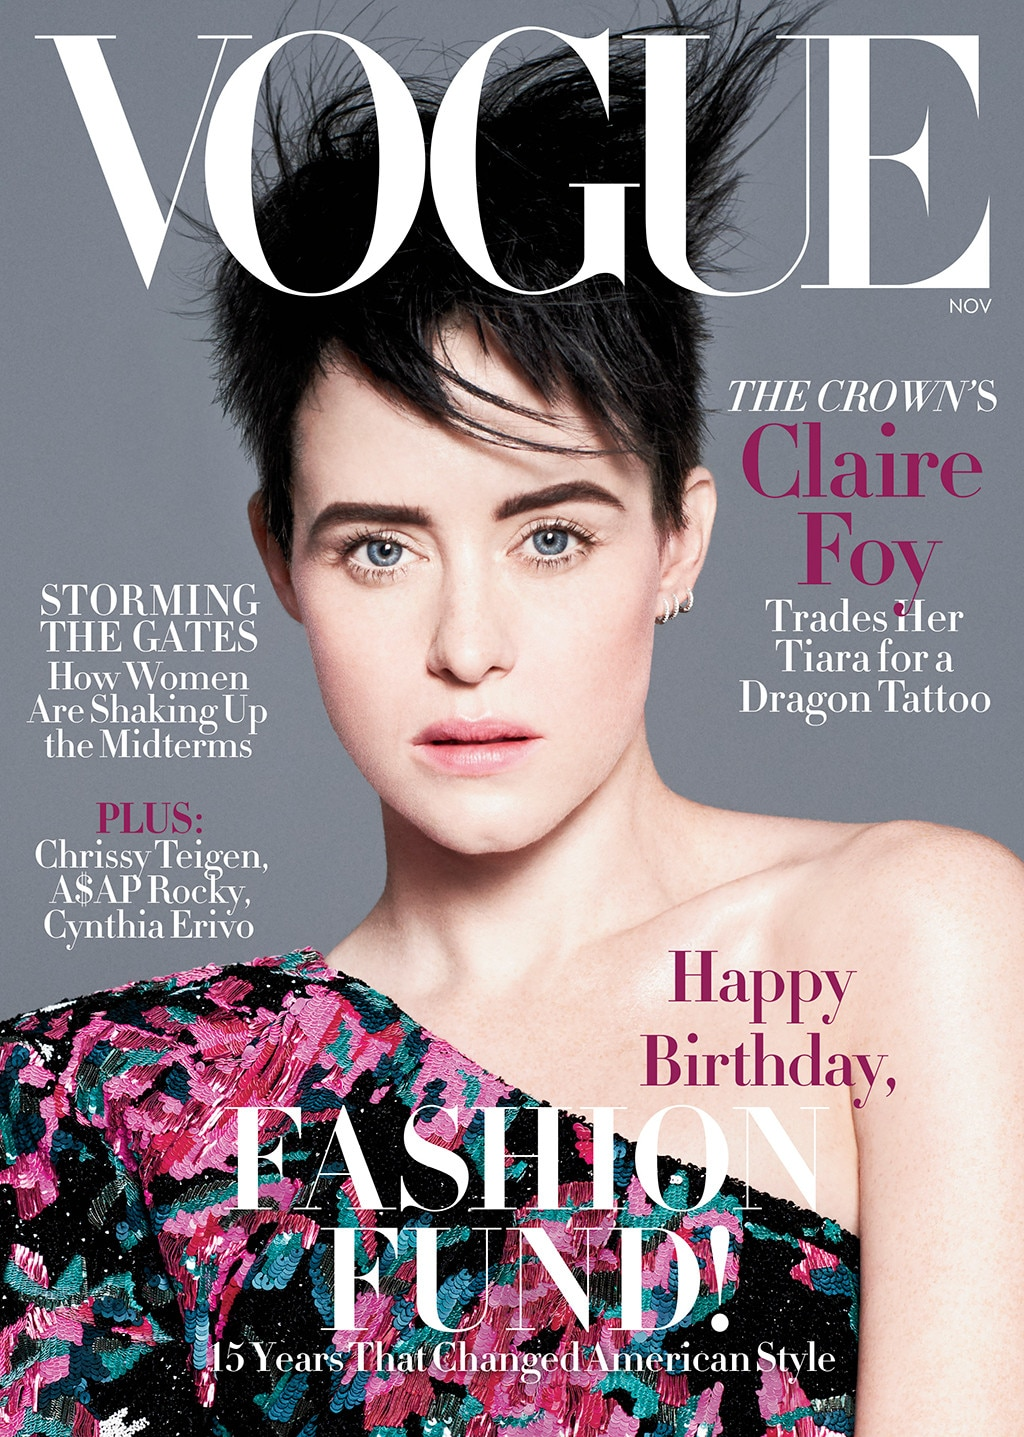 vogue covers foy claire magazine november american stars issue sims david star january web december australia photographed celebrity las gushes